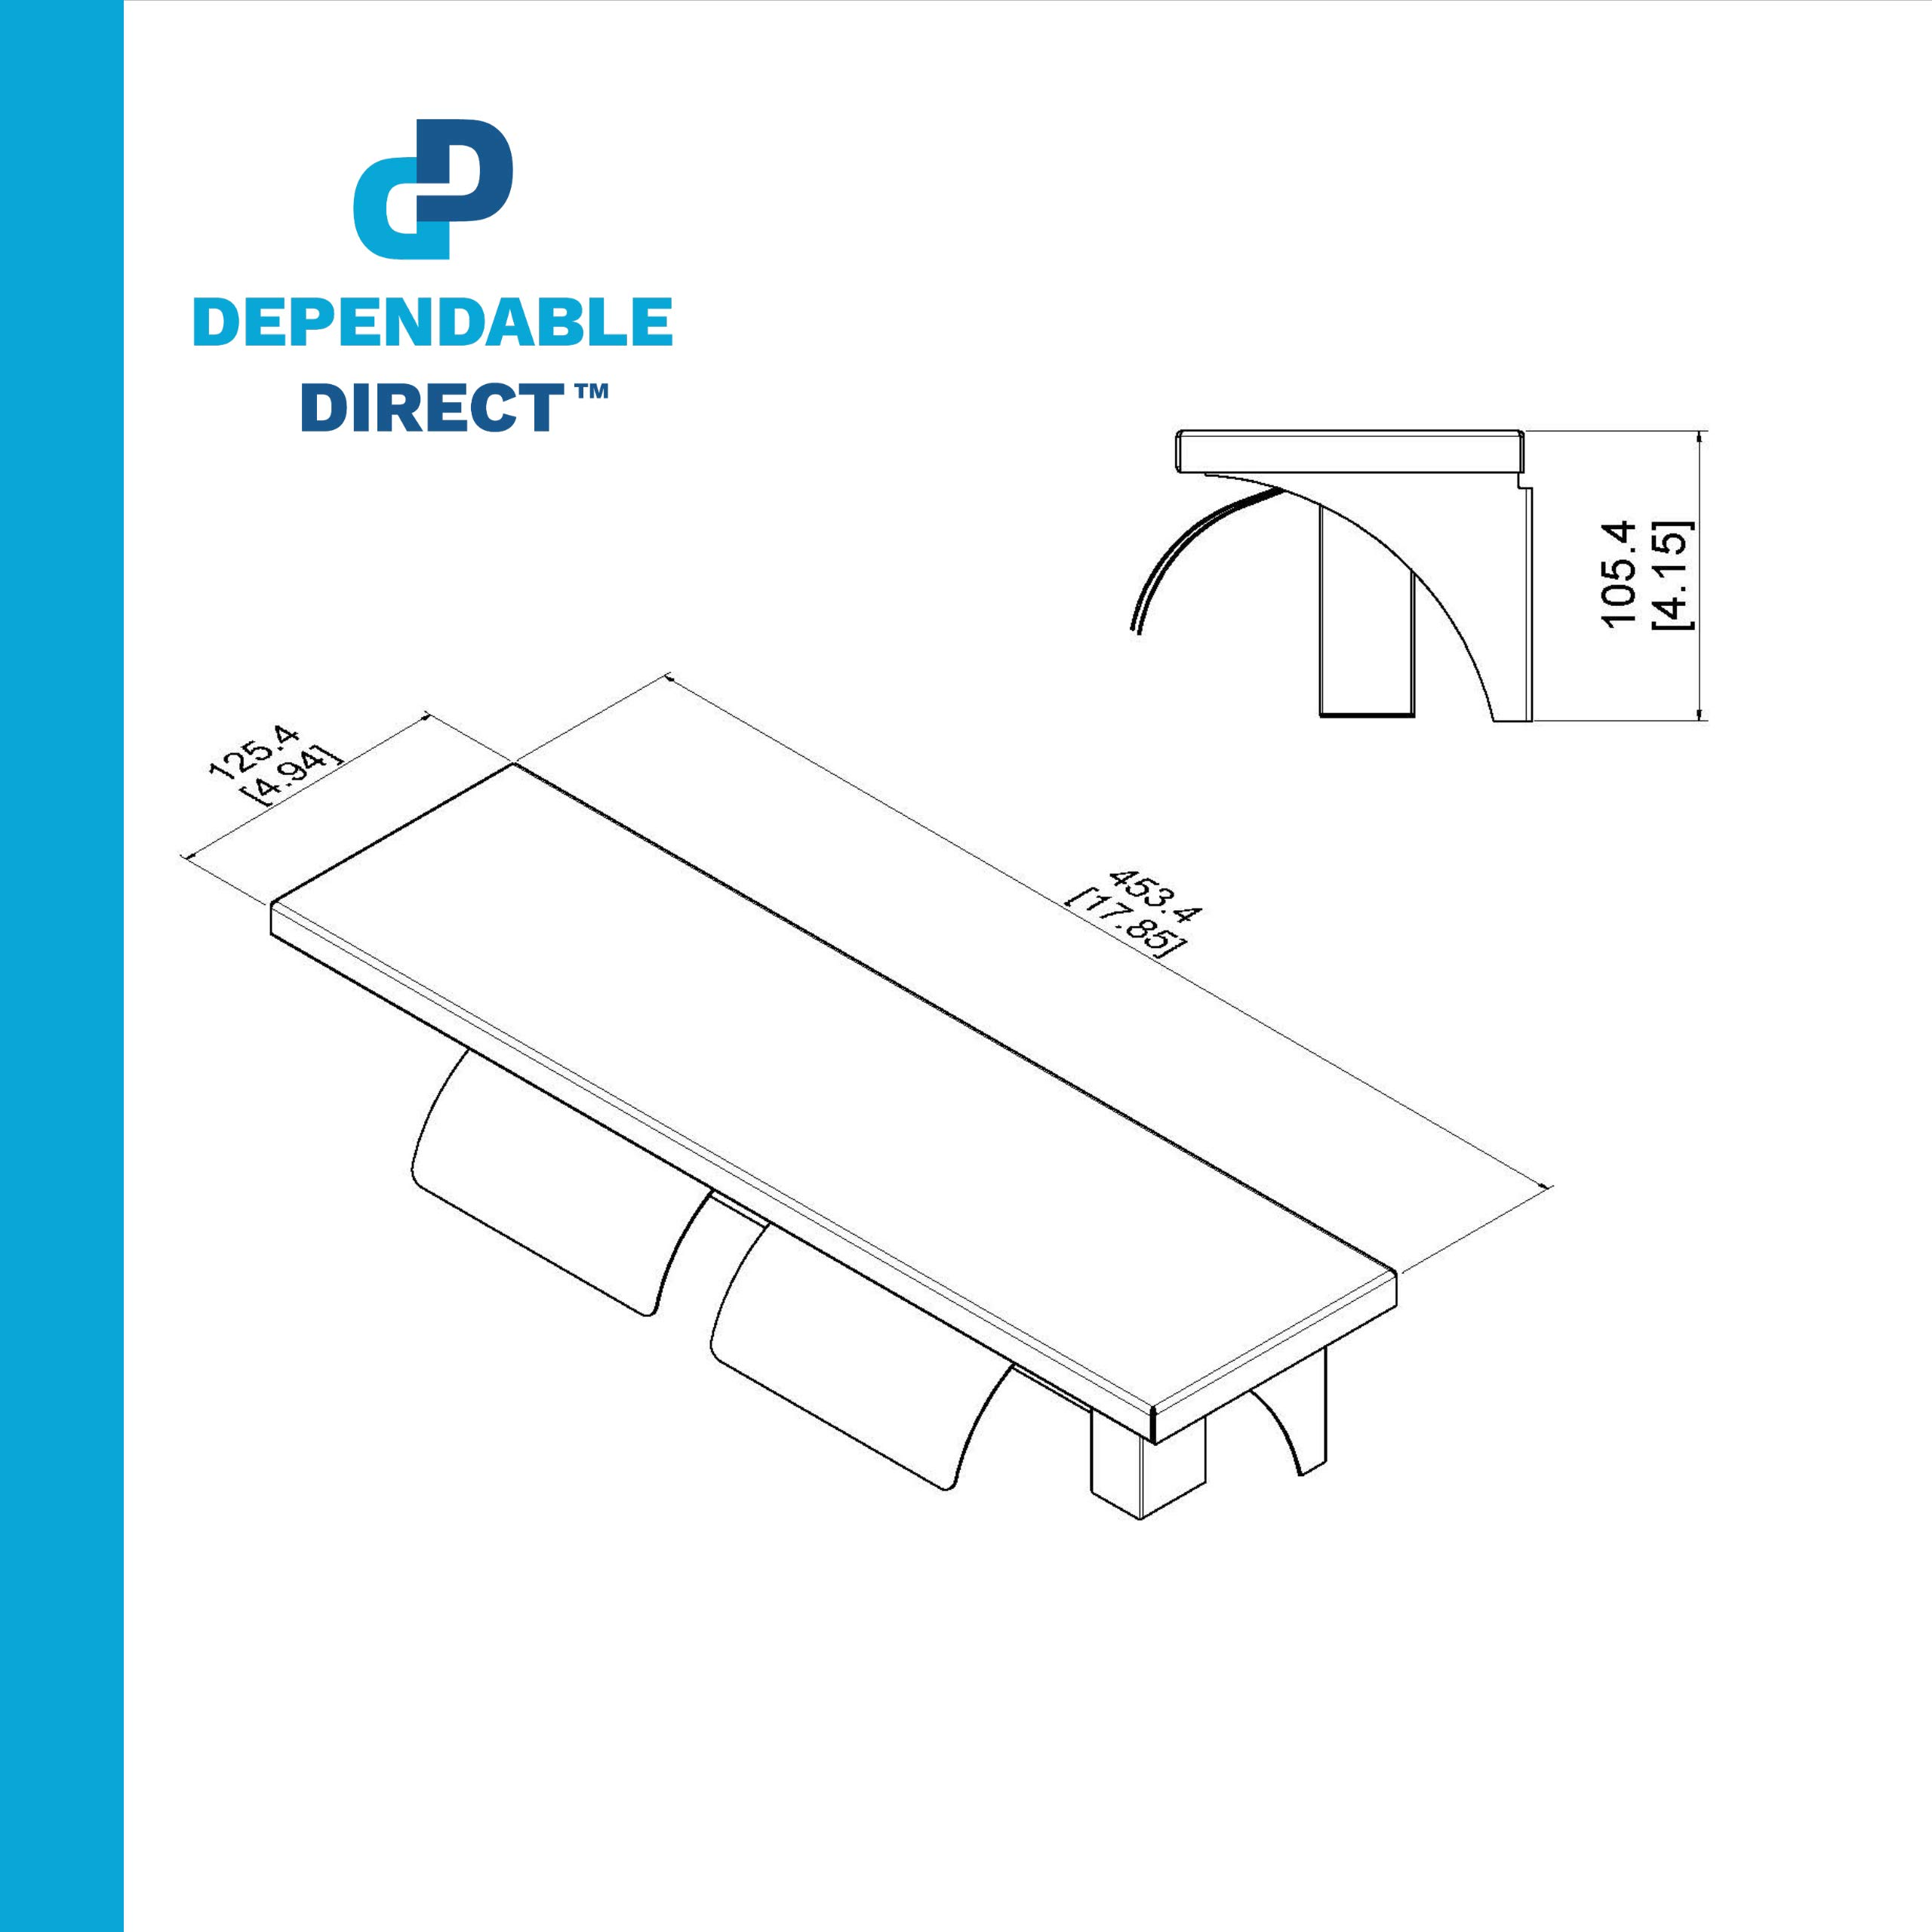 Dependable Direct Pack of 8 - Double Roll Toilet Paper Holder and Shelf - Stainless Steel - Satin Finish - Hooded by Dependable Direct (Image #5)